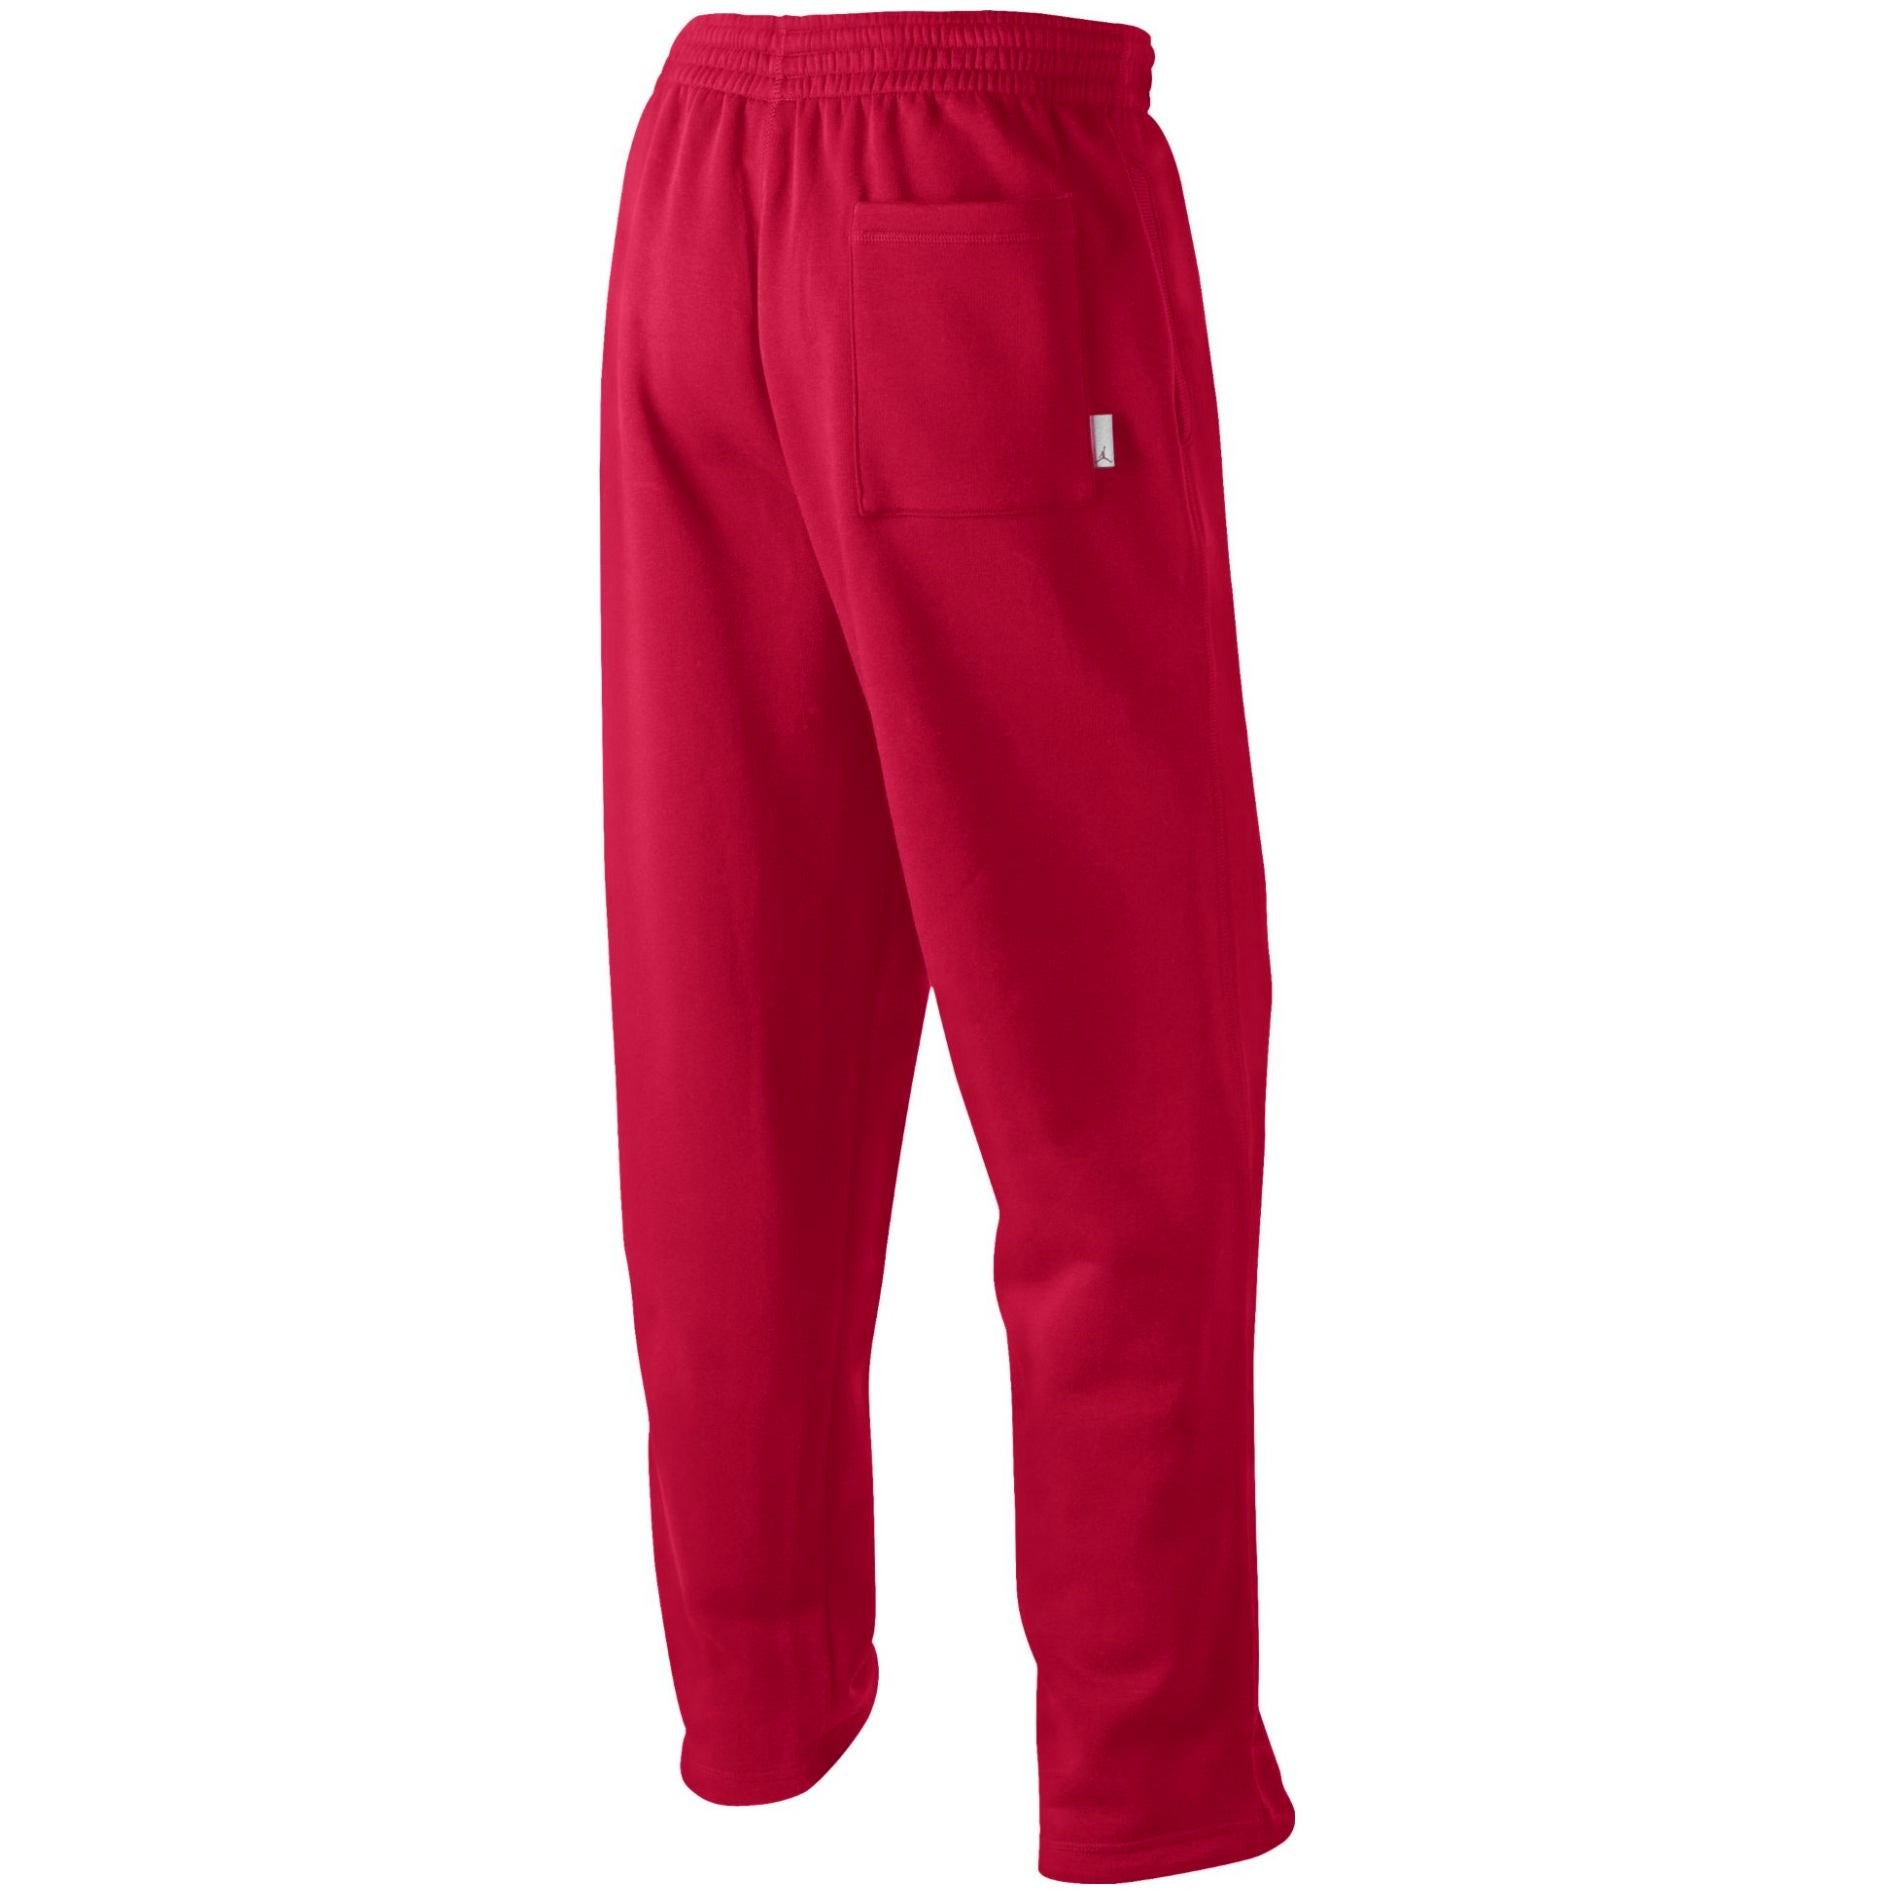 Nike Jordan All Day Everyday Pant - Team Red/Black